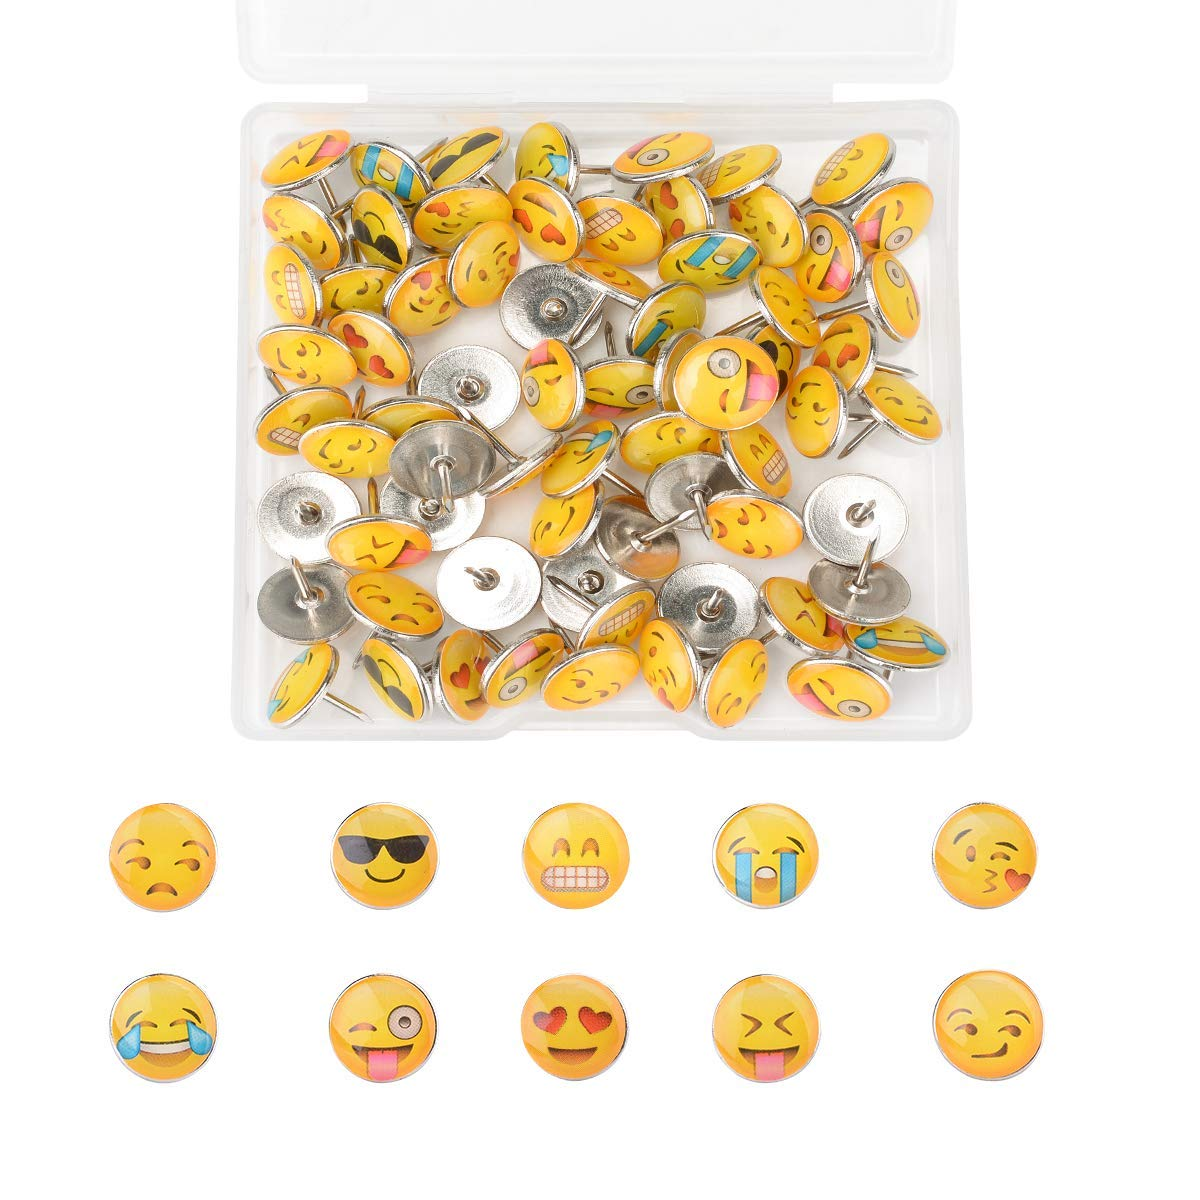 Nakenja 80 Pieces Smiley Face Push Pins Creative Thumb Tacks for Photos Wall, Maps, Bulletin Board or Cork Boards with a Storage Box, 10 Different Patterns